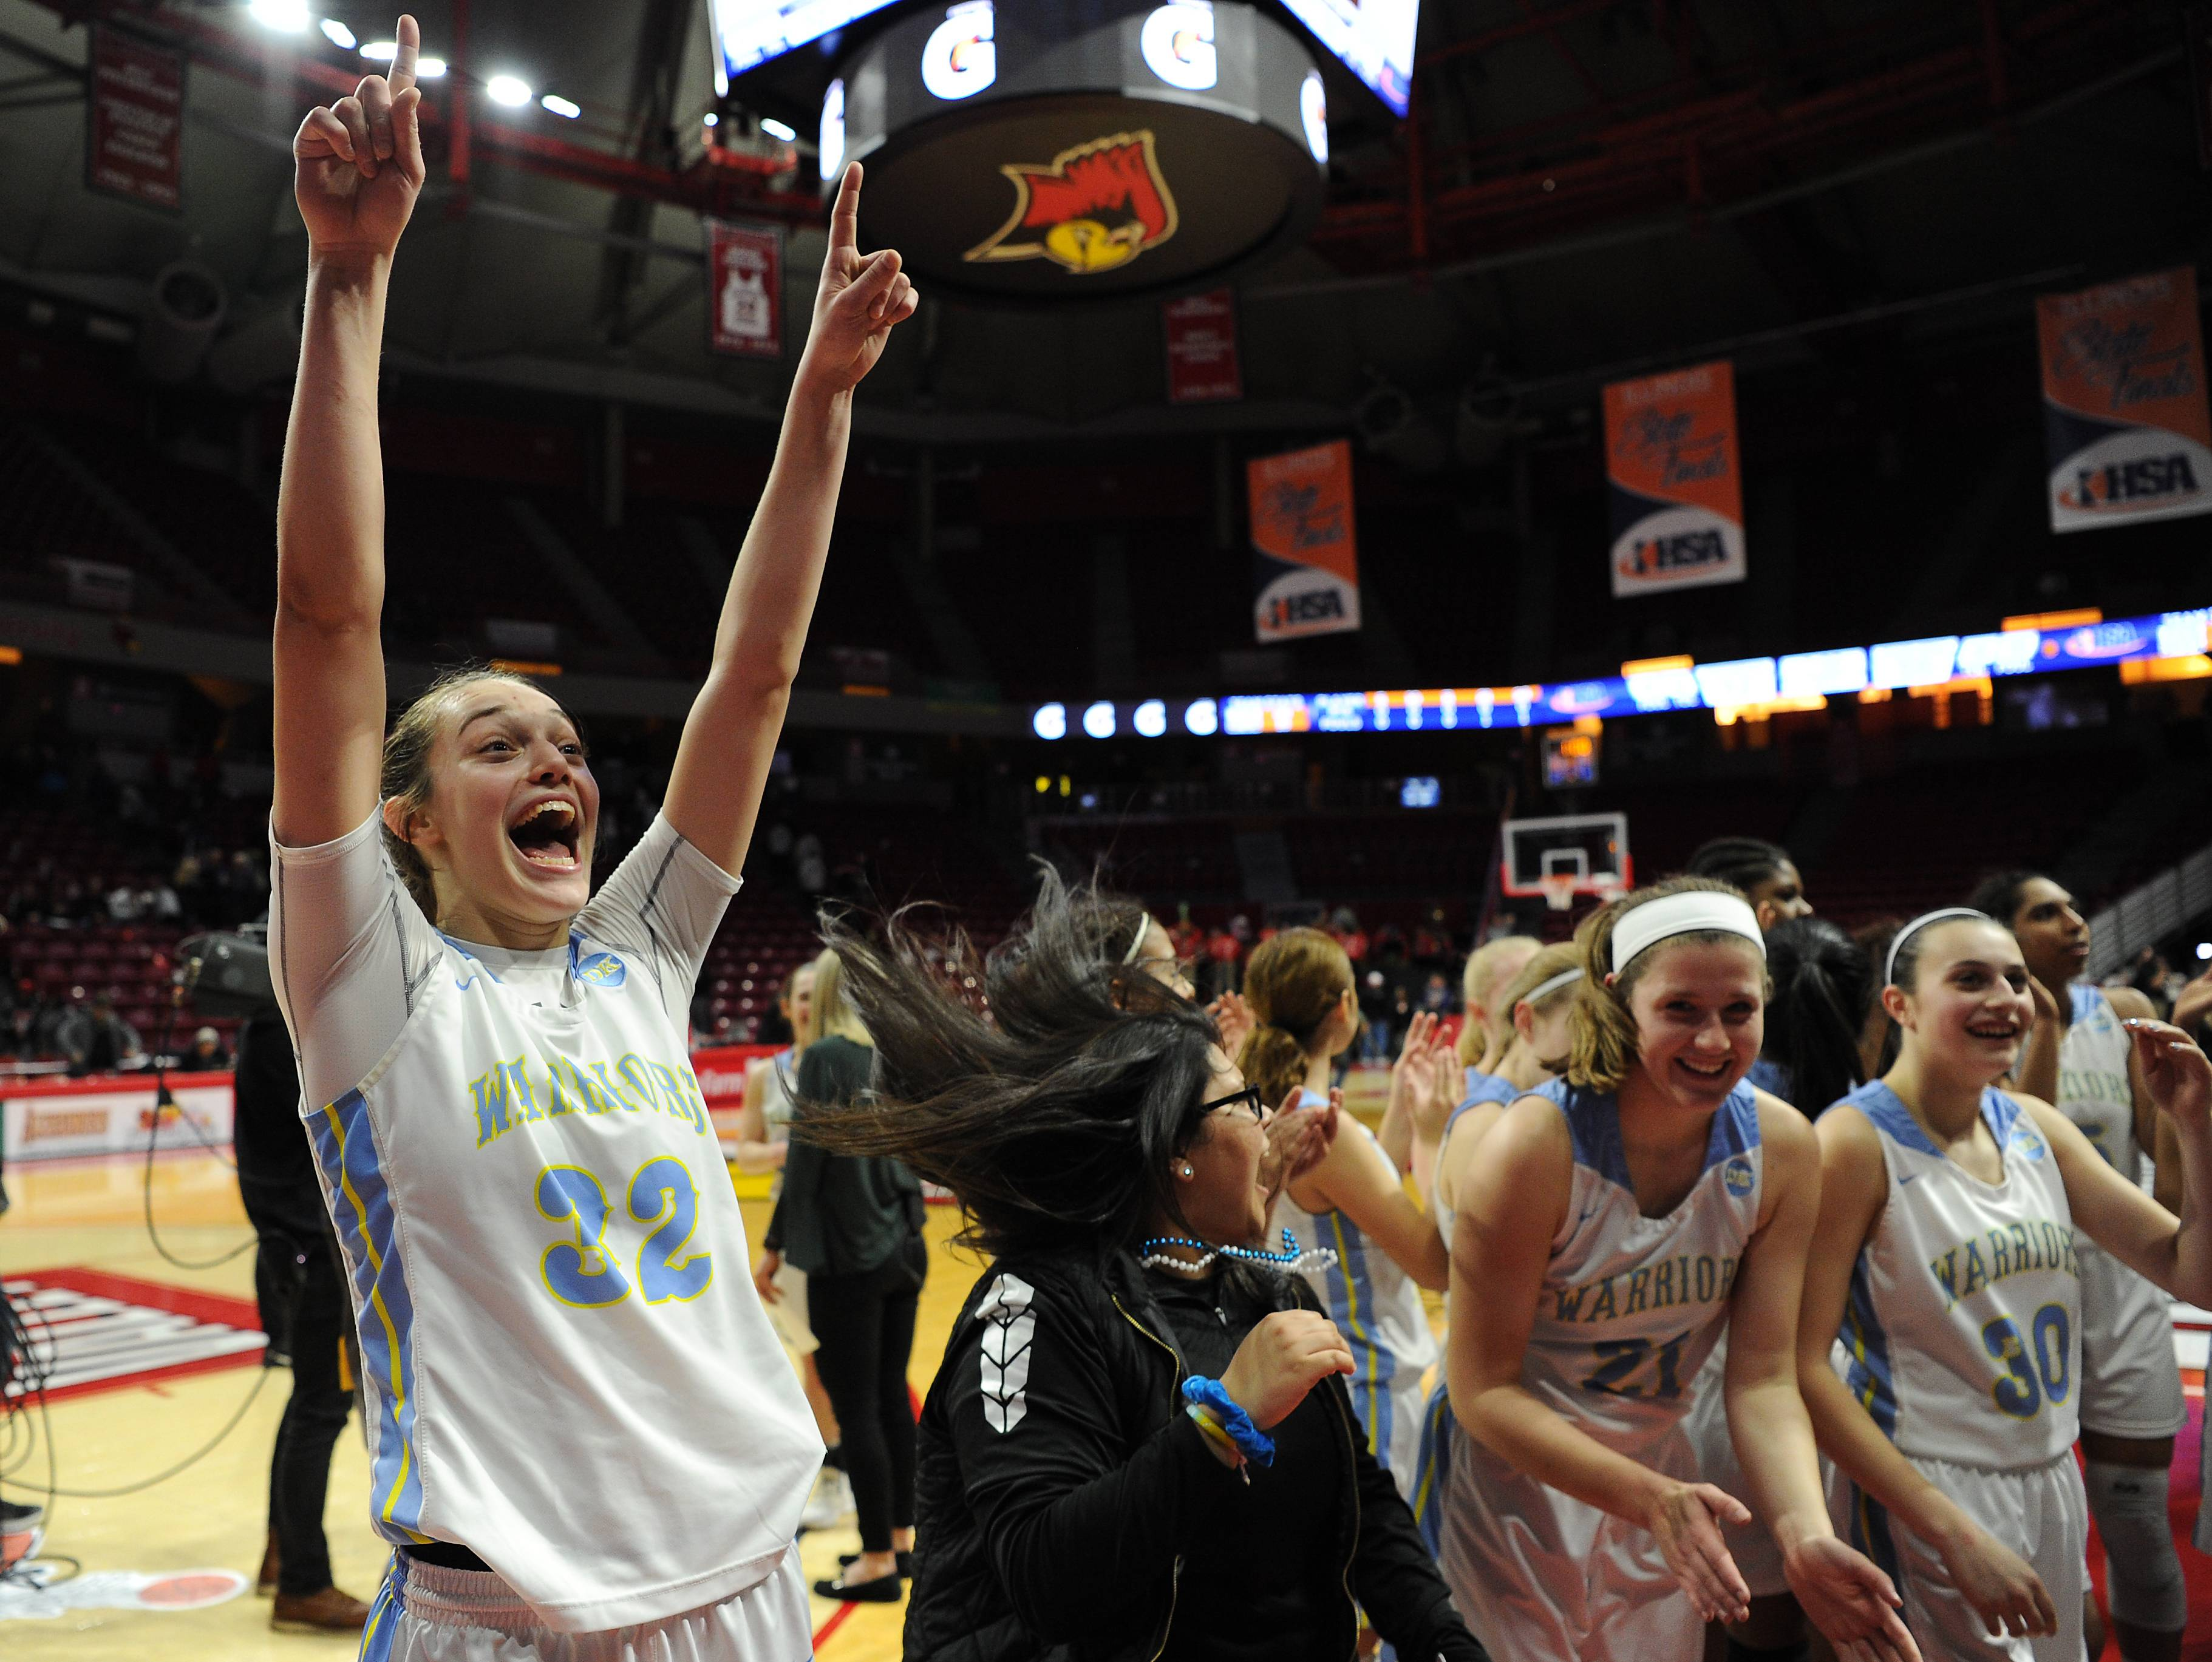 Maine West's Angela Dugalic celebrates with her teammates as she turns towards her fans after they win over Hononegah and head to the finals against Mother McAuley in the IHSA girls state basketball Class 4A semifinals at Normal on Friday.